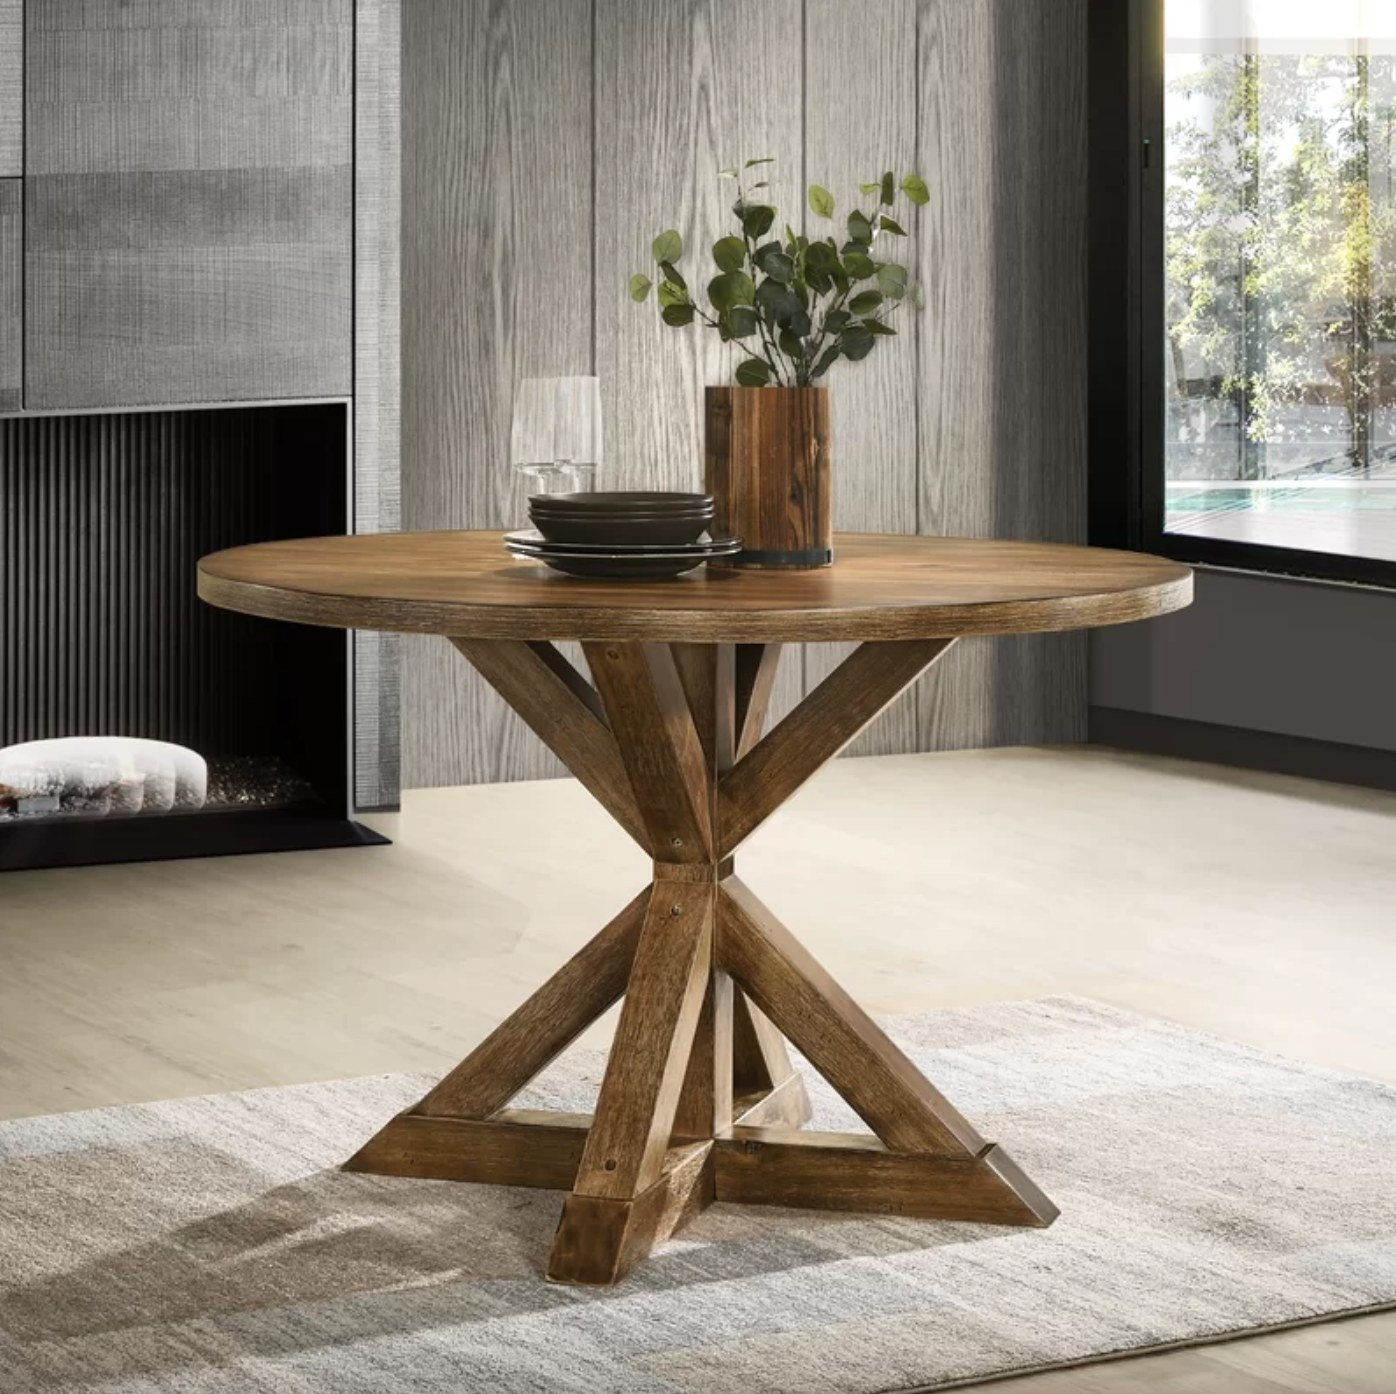 The dining table in natural/ ash holding plates, wine glasses, and vase of eucalyptus flowers